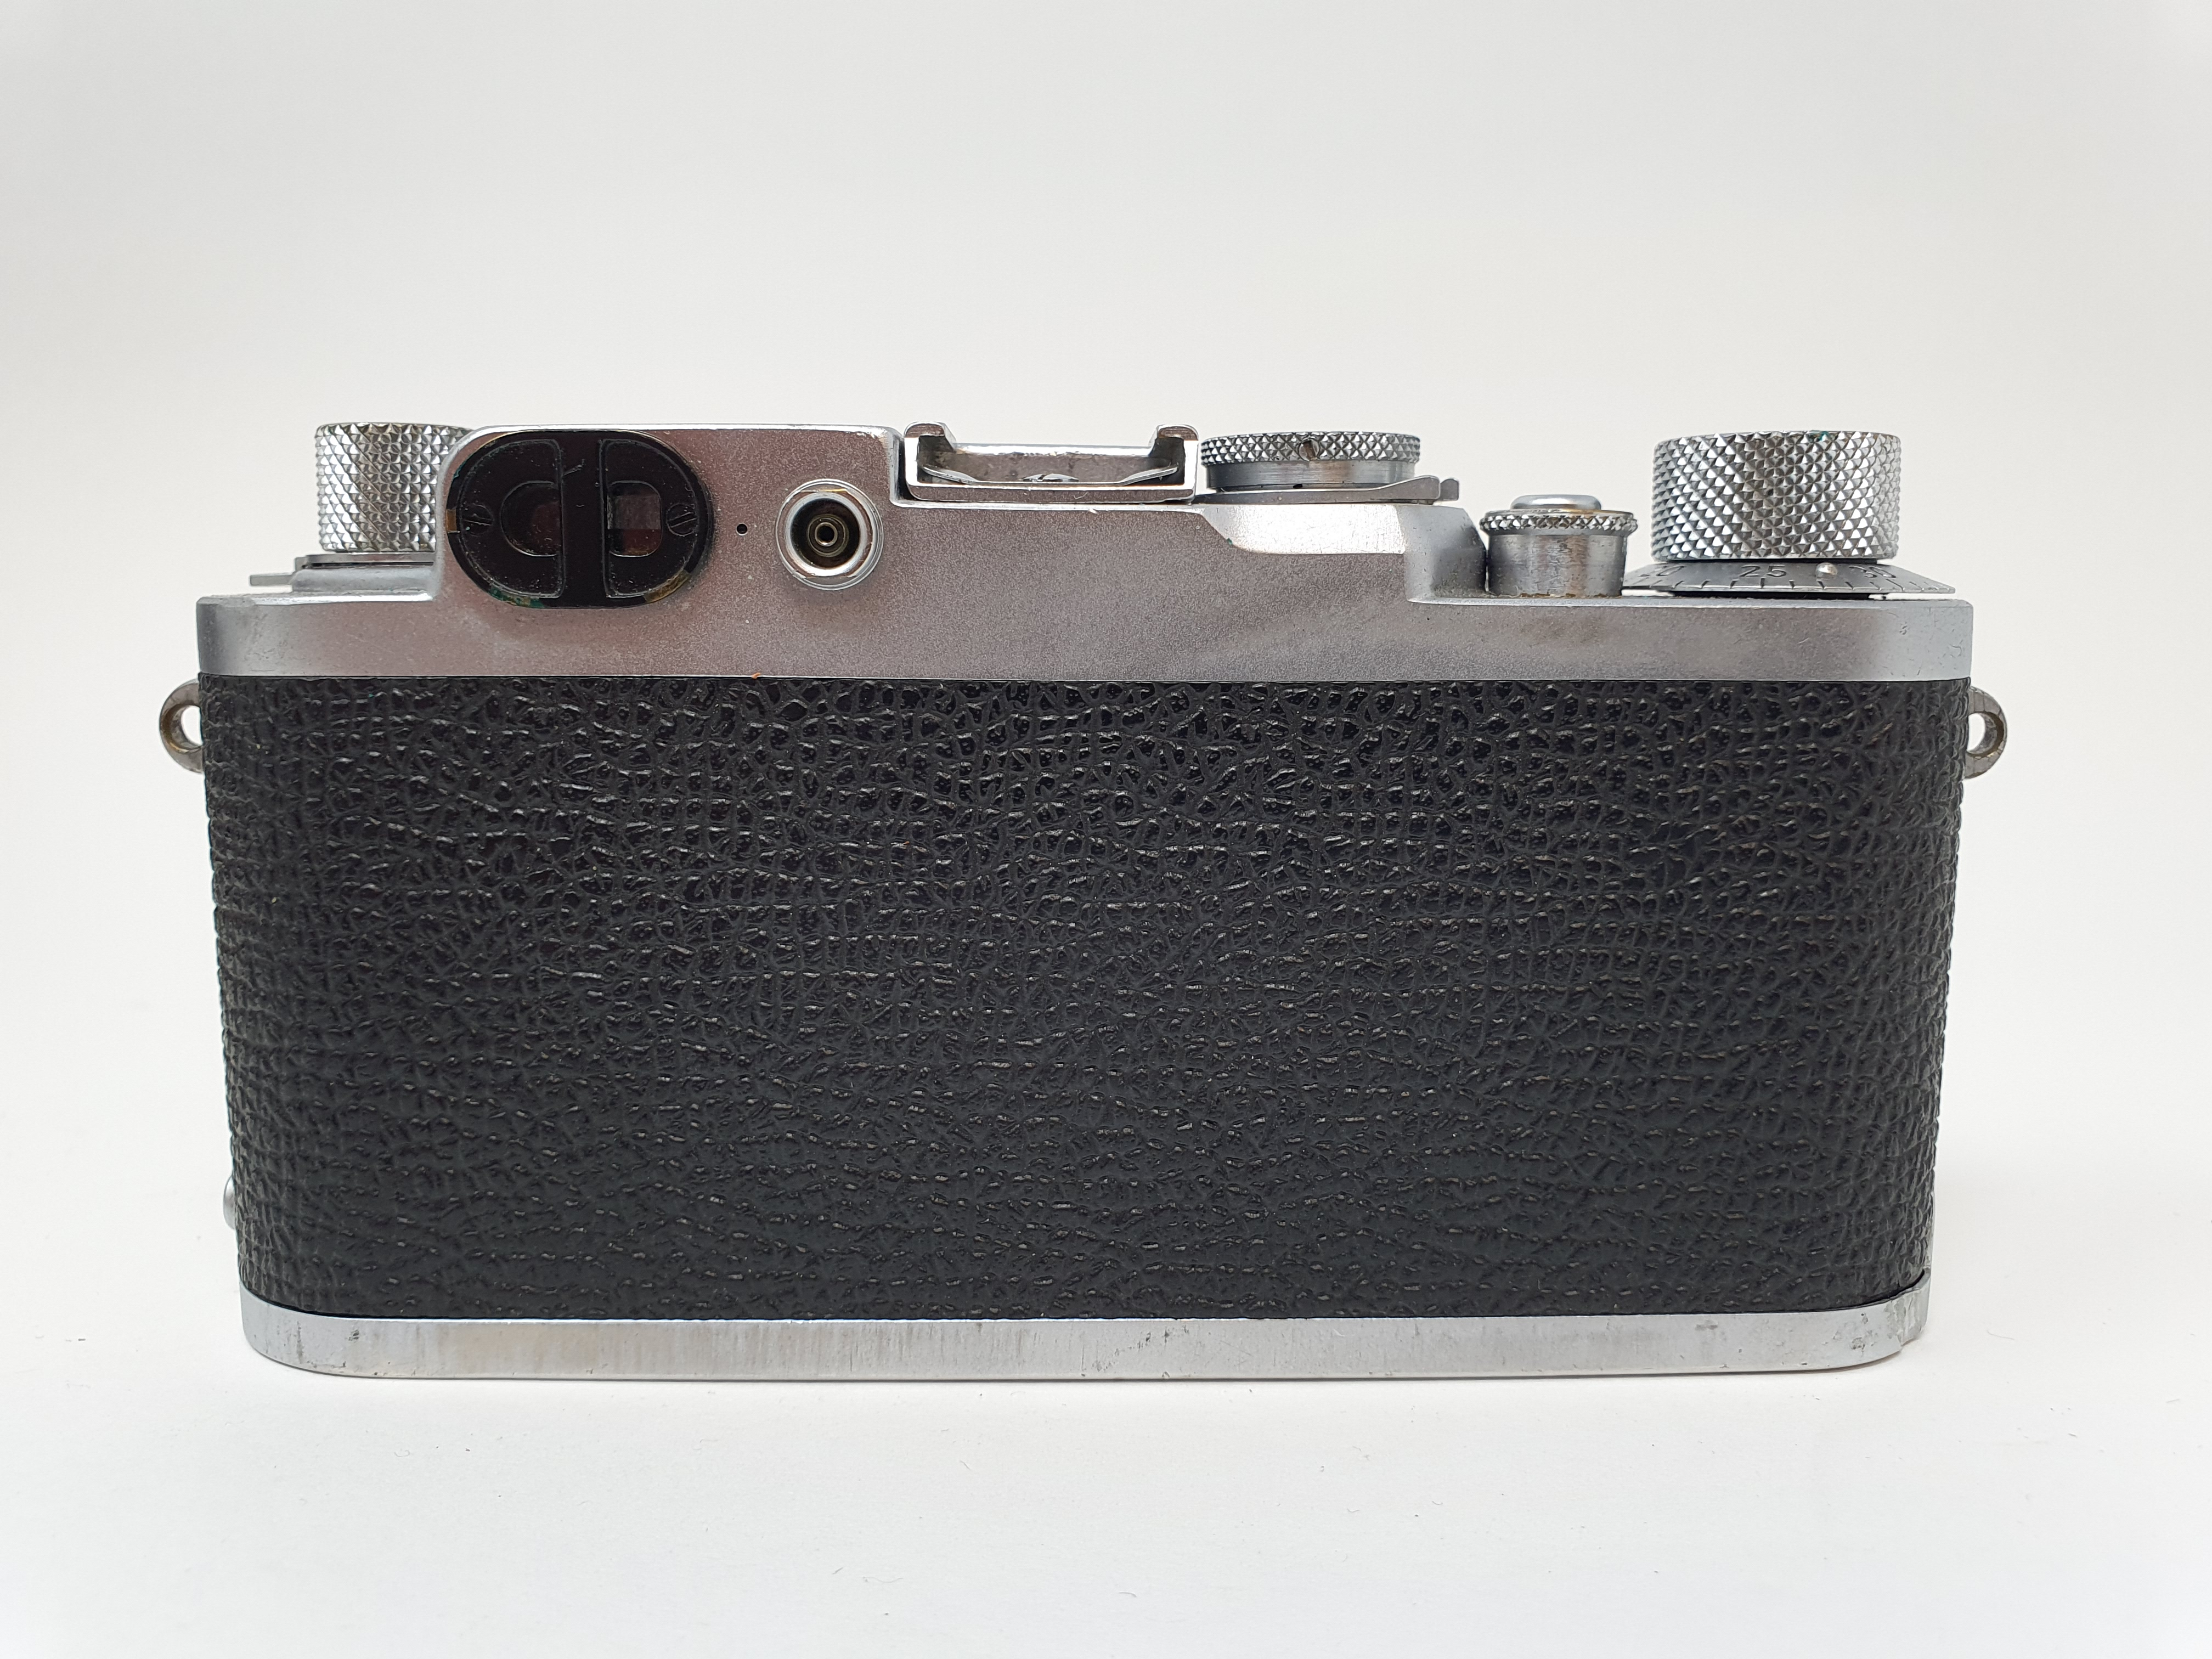 A Leica IIIf camera, serial number 798046, with leather outer case Provenance: Part of a vast single - Image 4 of 5